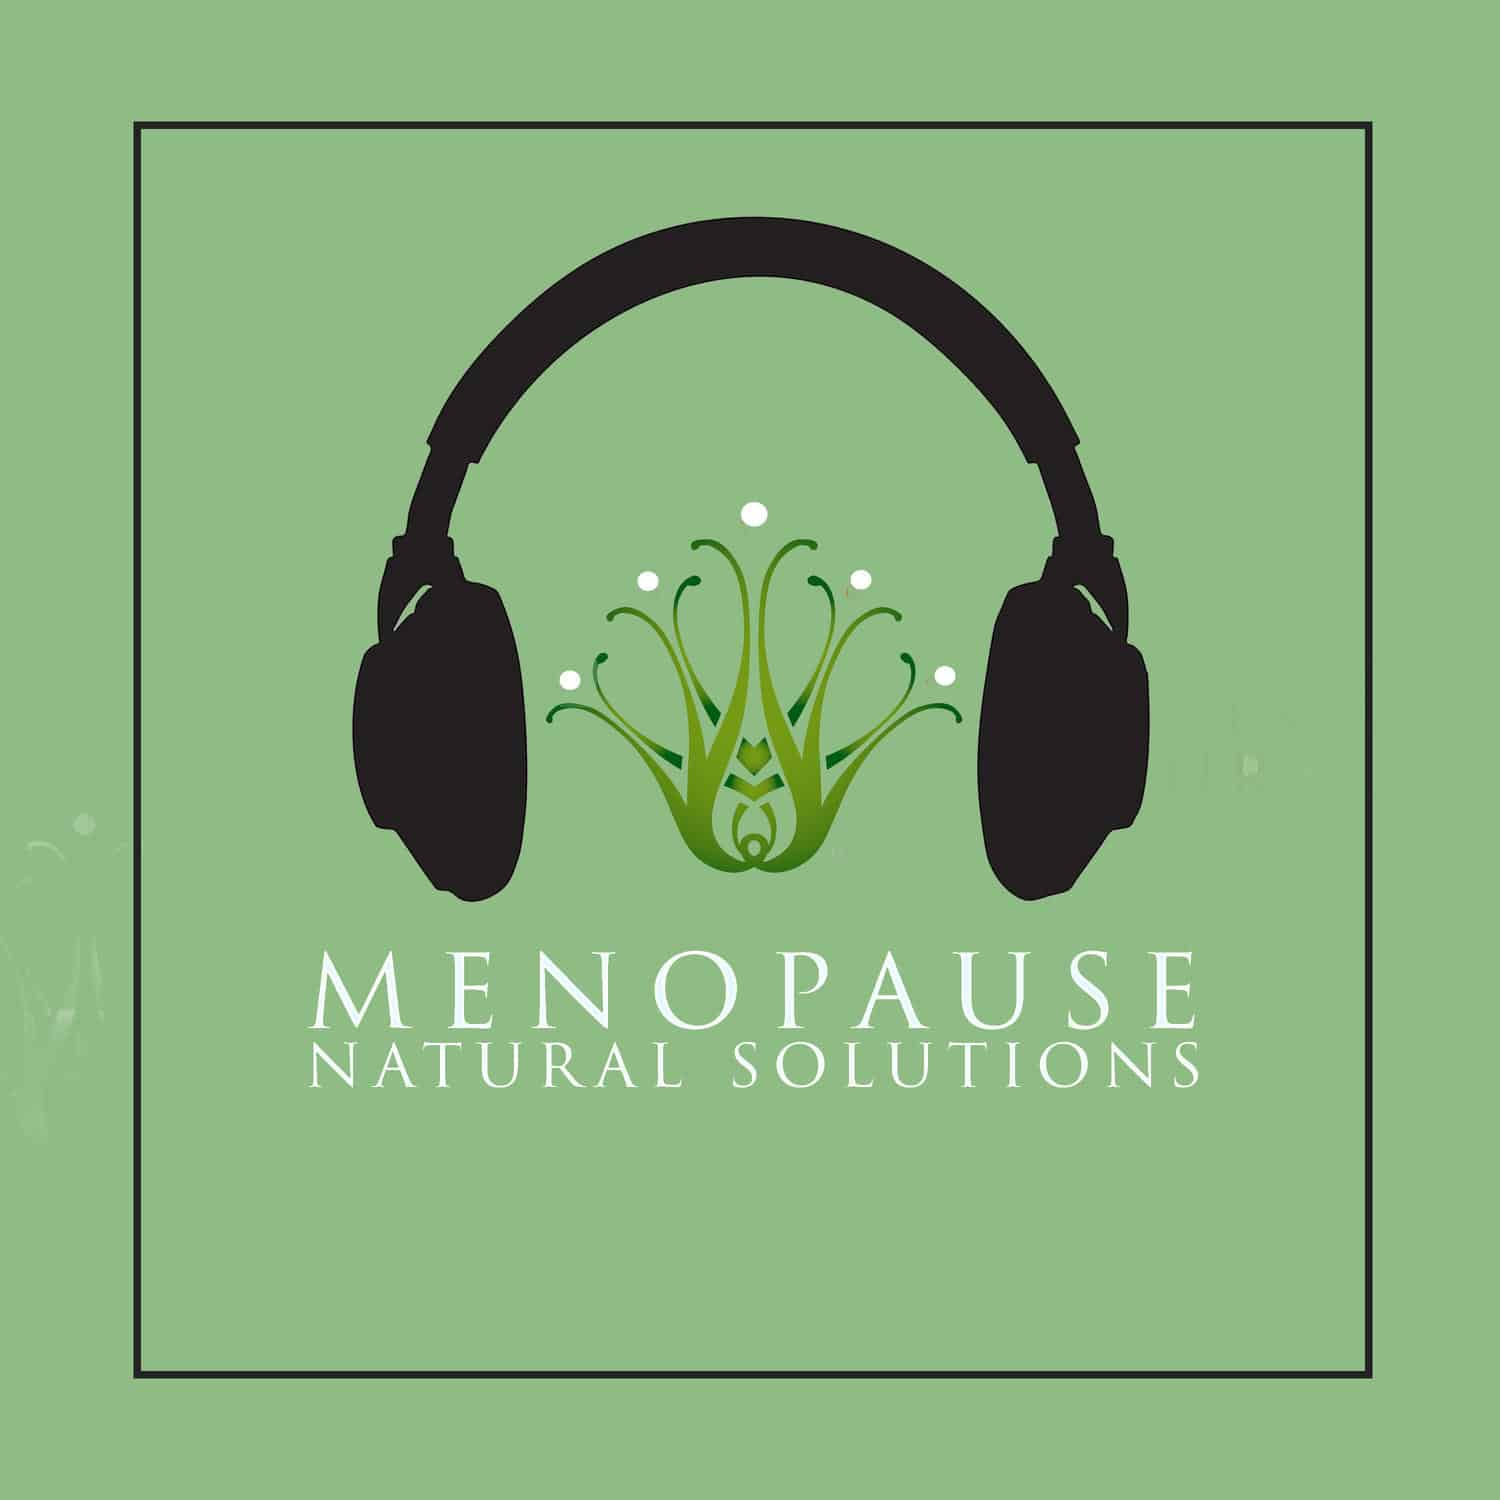 Menopause Natural Solutions